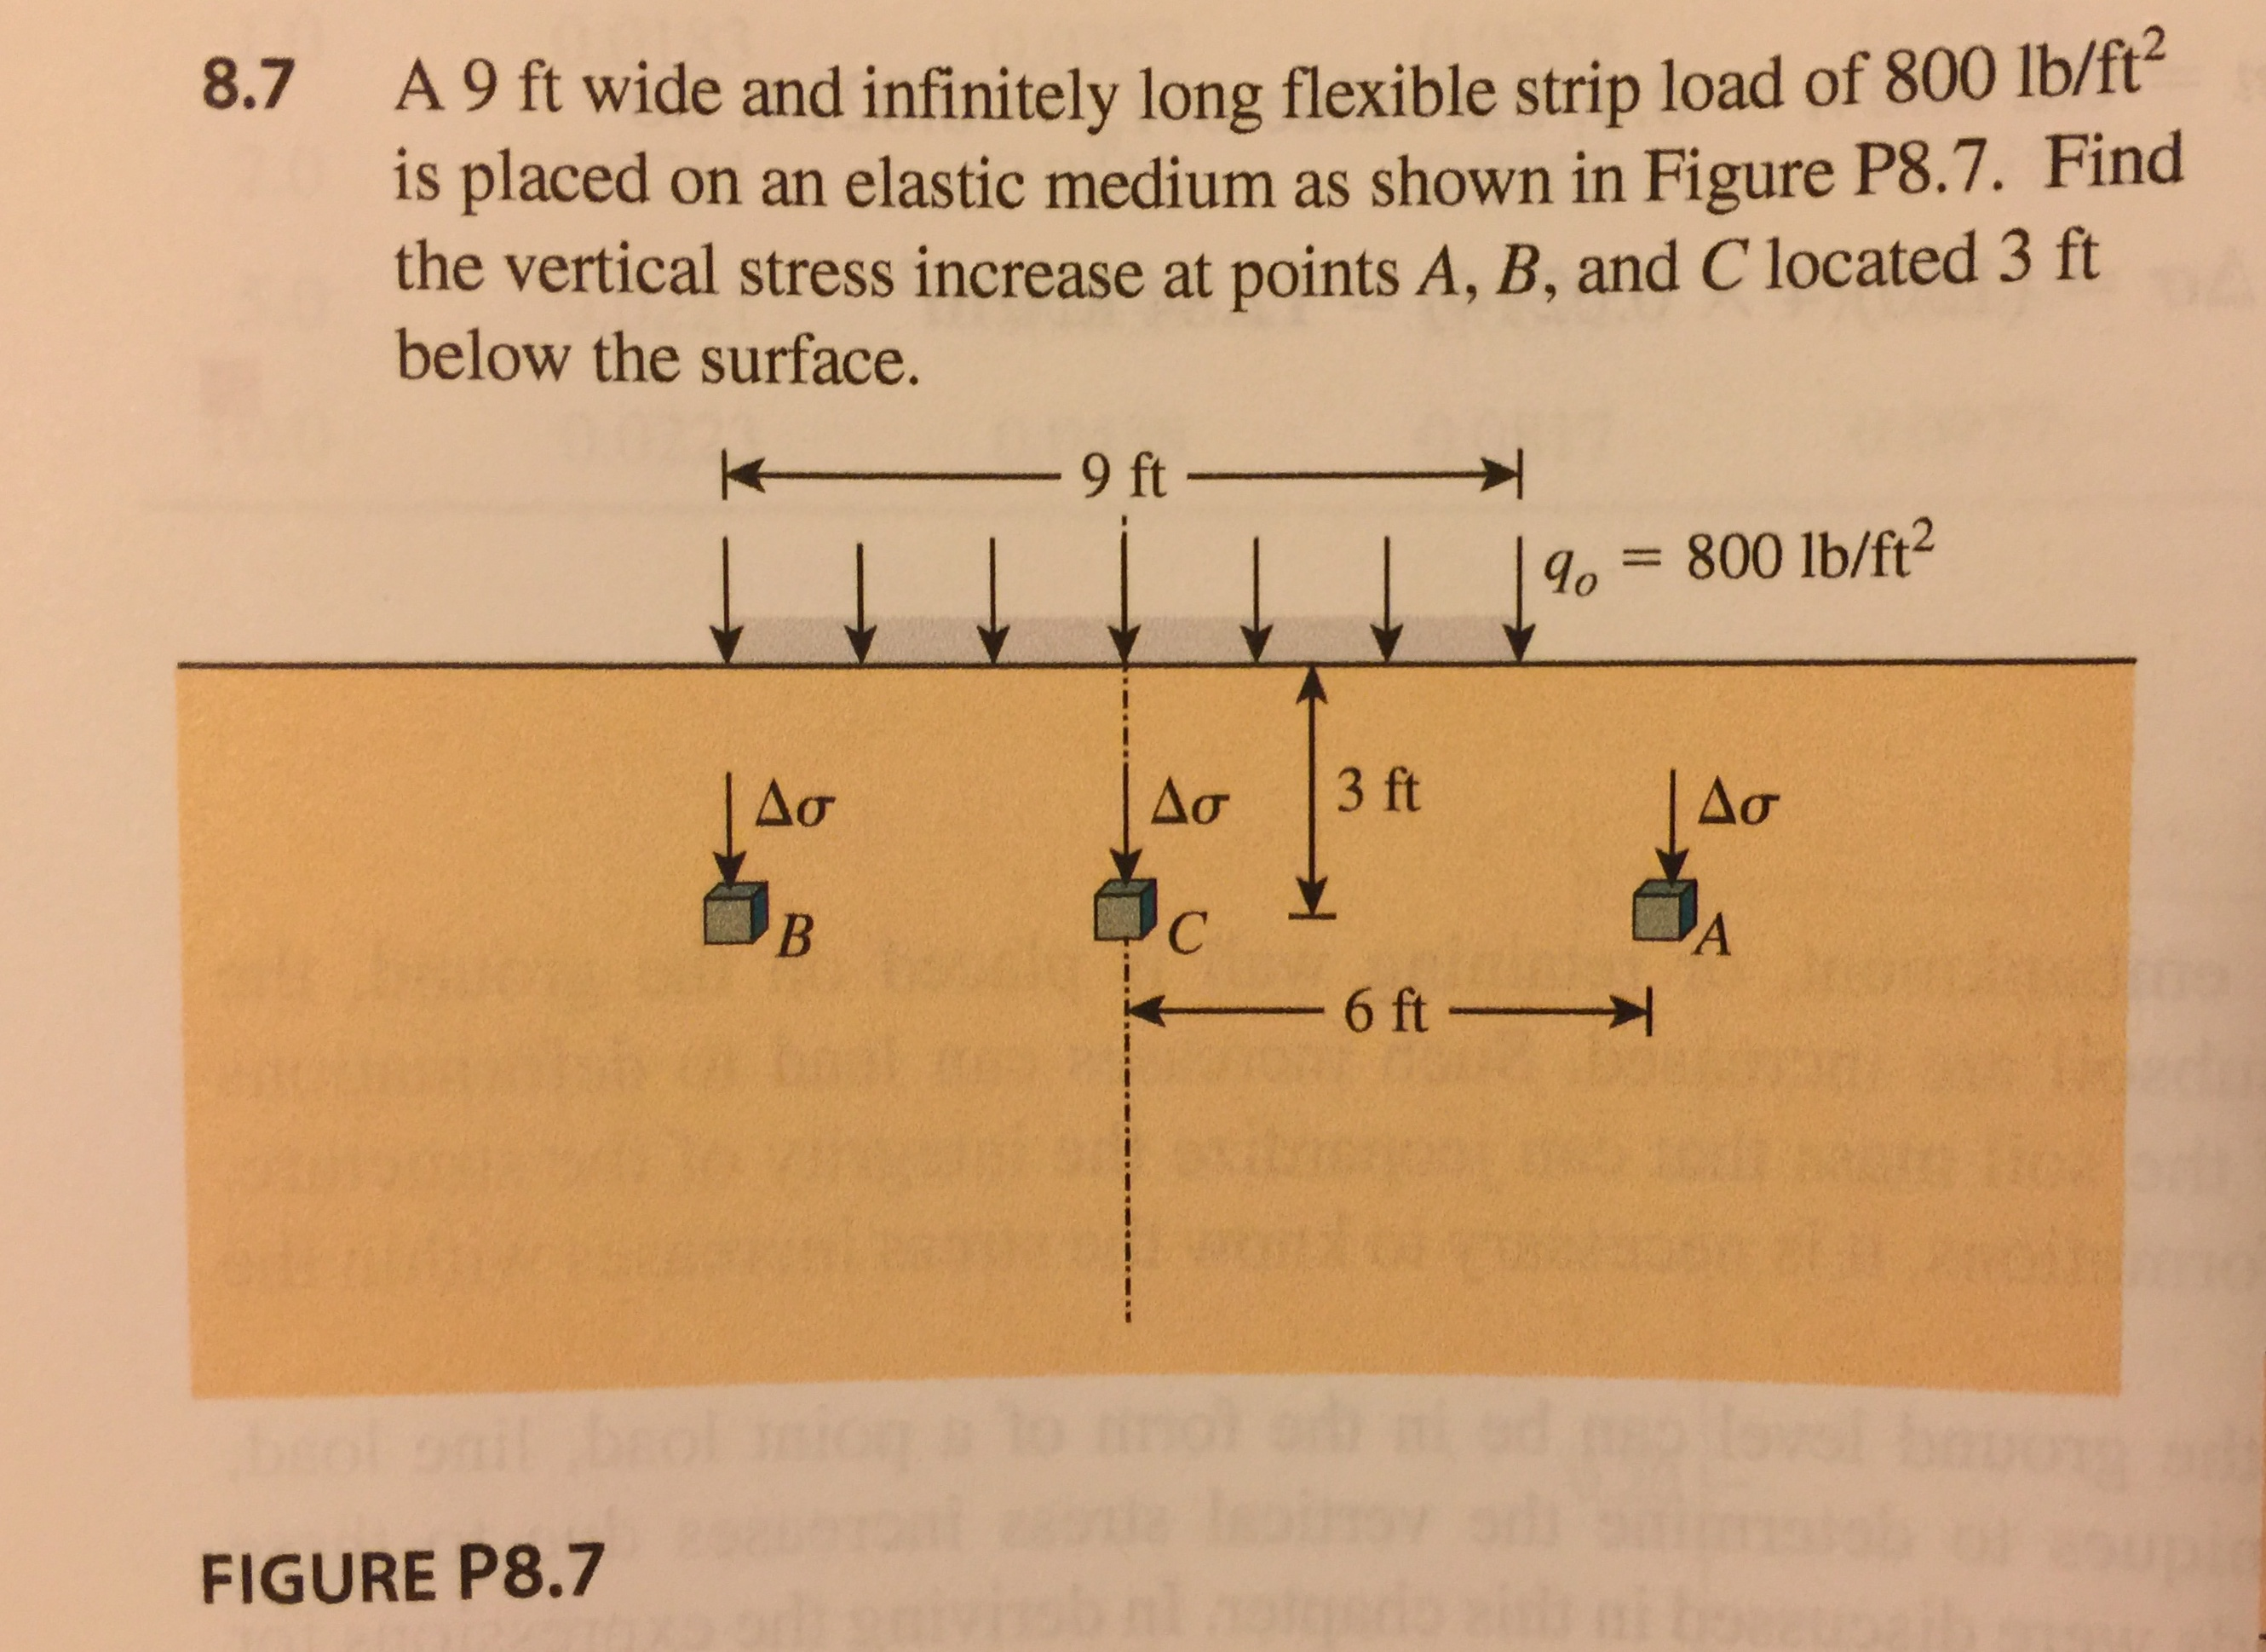 8.7 A9 ft wide and infinitely long flexible strip load of 800 lb/ft is placed on an elastic medium as shown in Figure P8.7. Find the vertical stress increase at points A, B, and C located 3 ft below the surface. o 800 lb/ft2 6 ft FIGURE P8.7